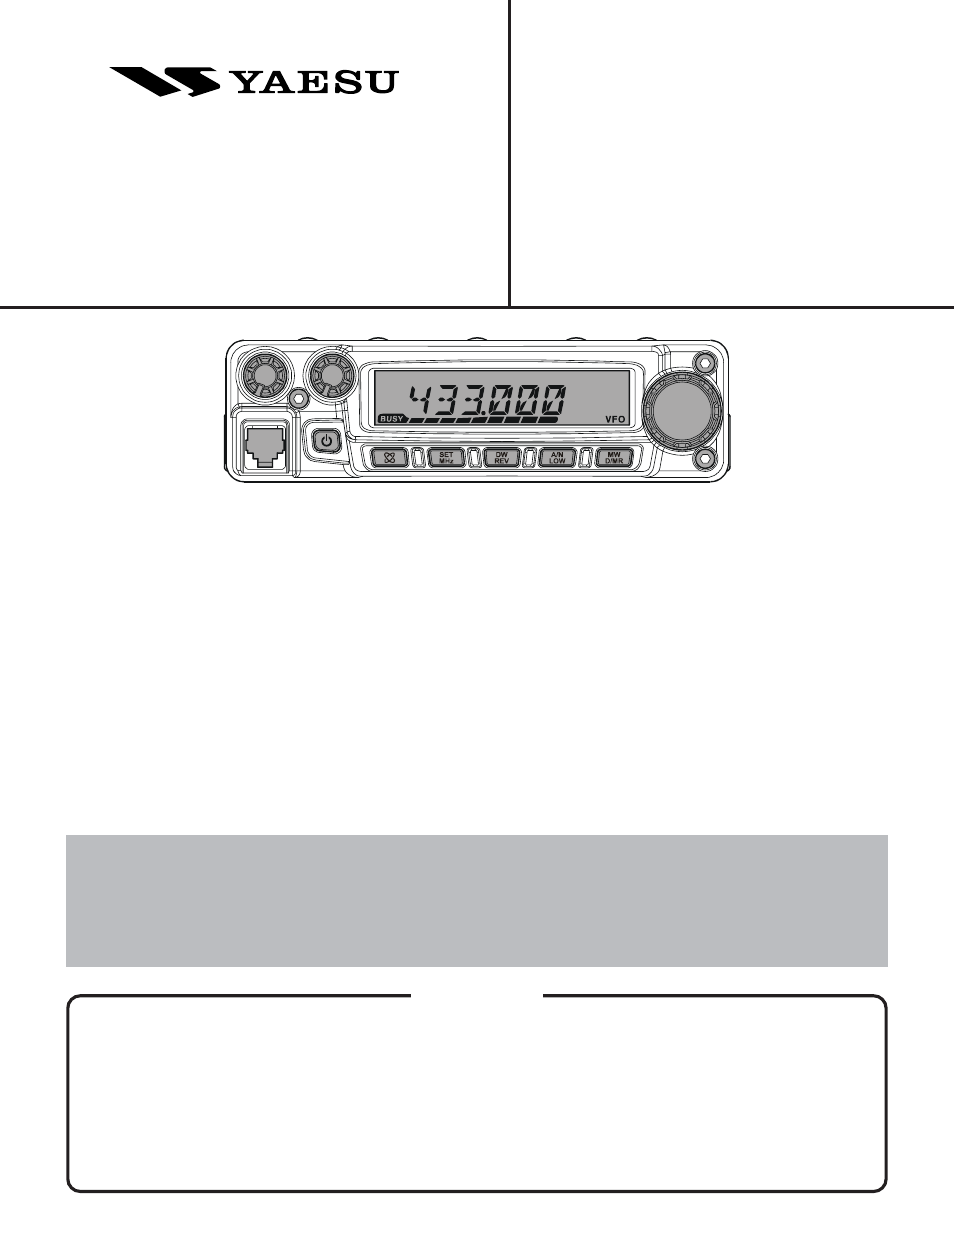 Vertex Standard Ft 1807m User Manual 34 Pages Schematics And Layouts